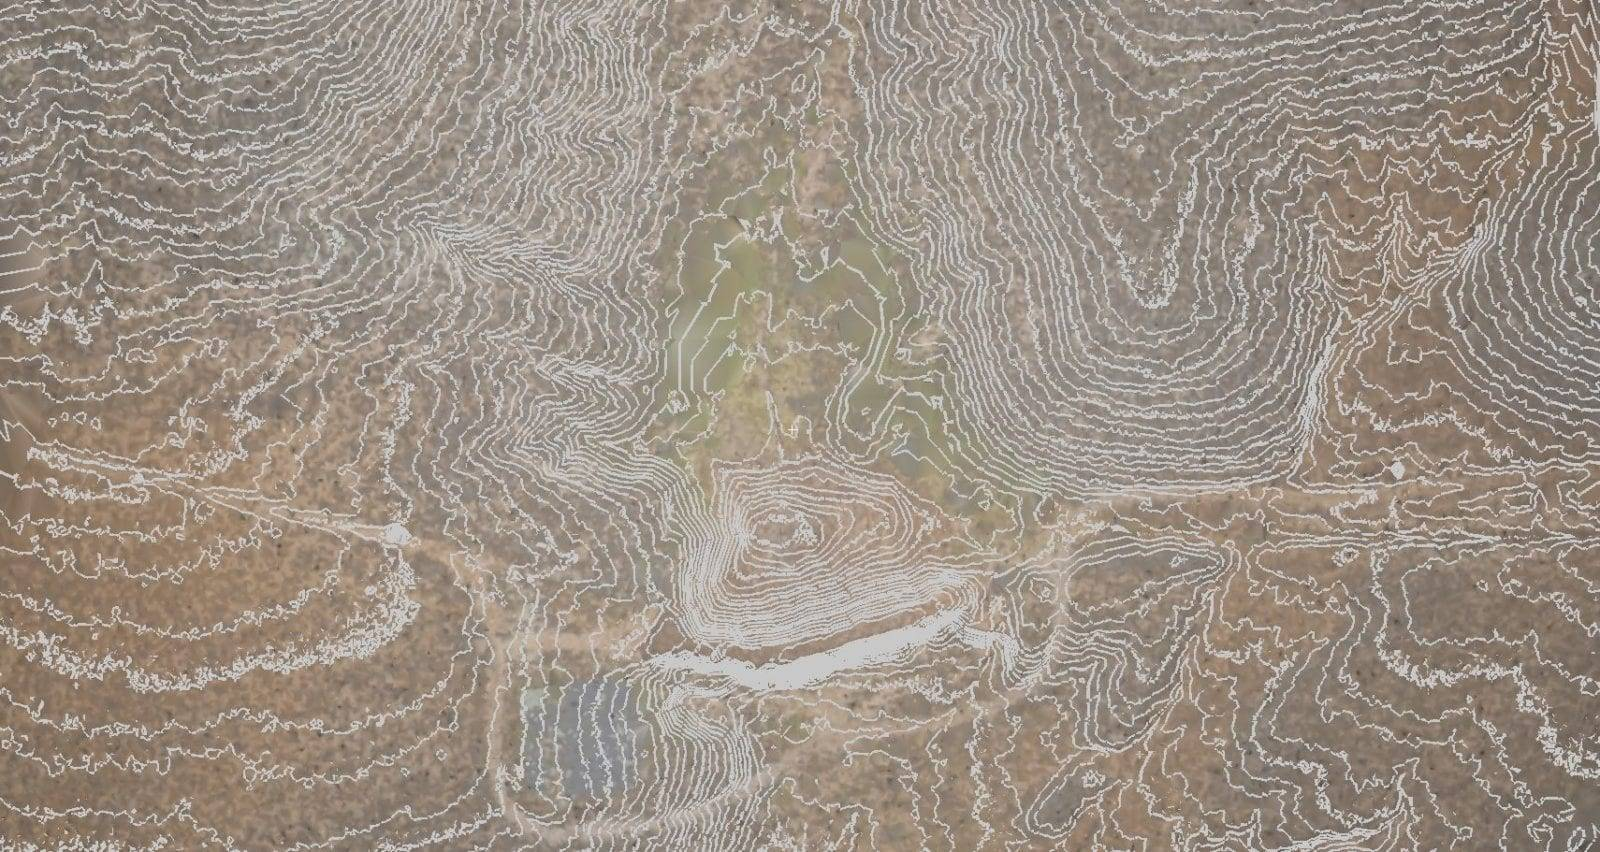 topographic map from data captured by one of our drones in Arizona